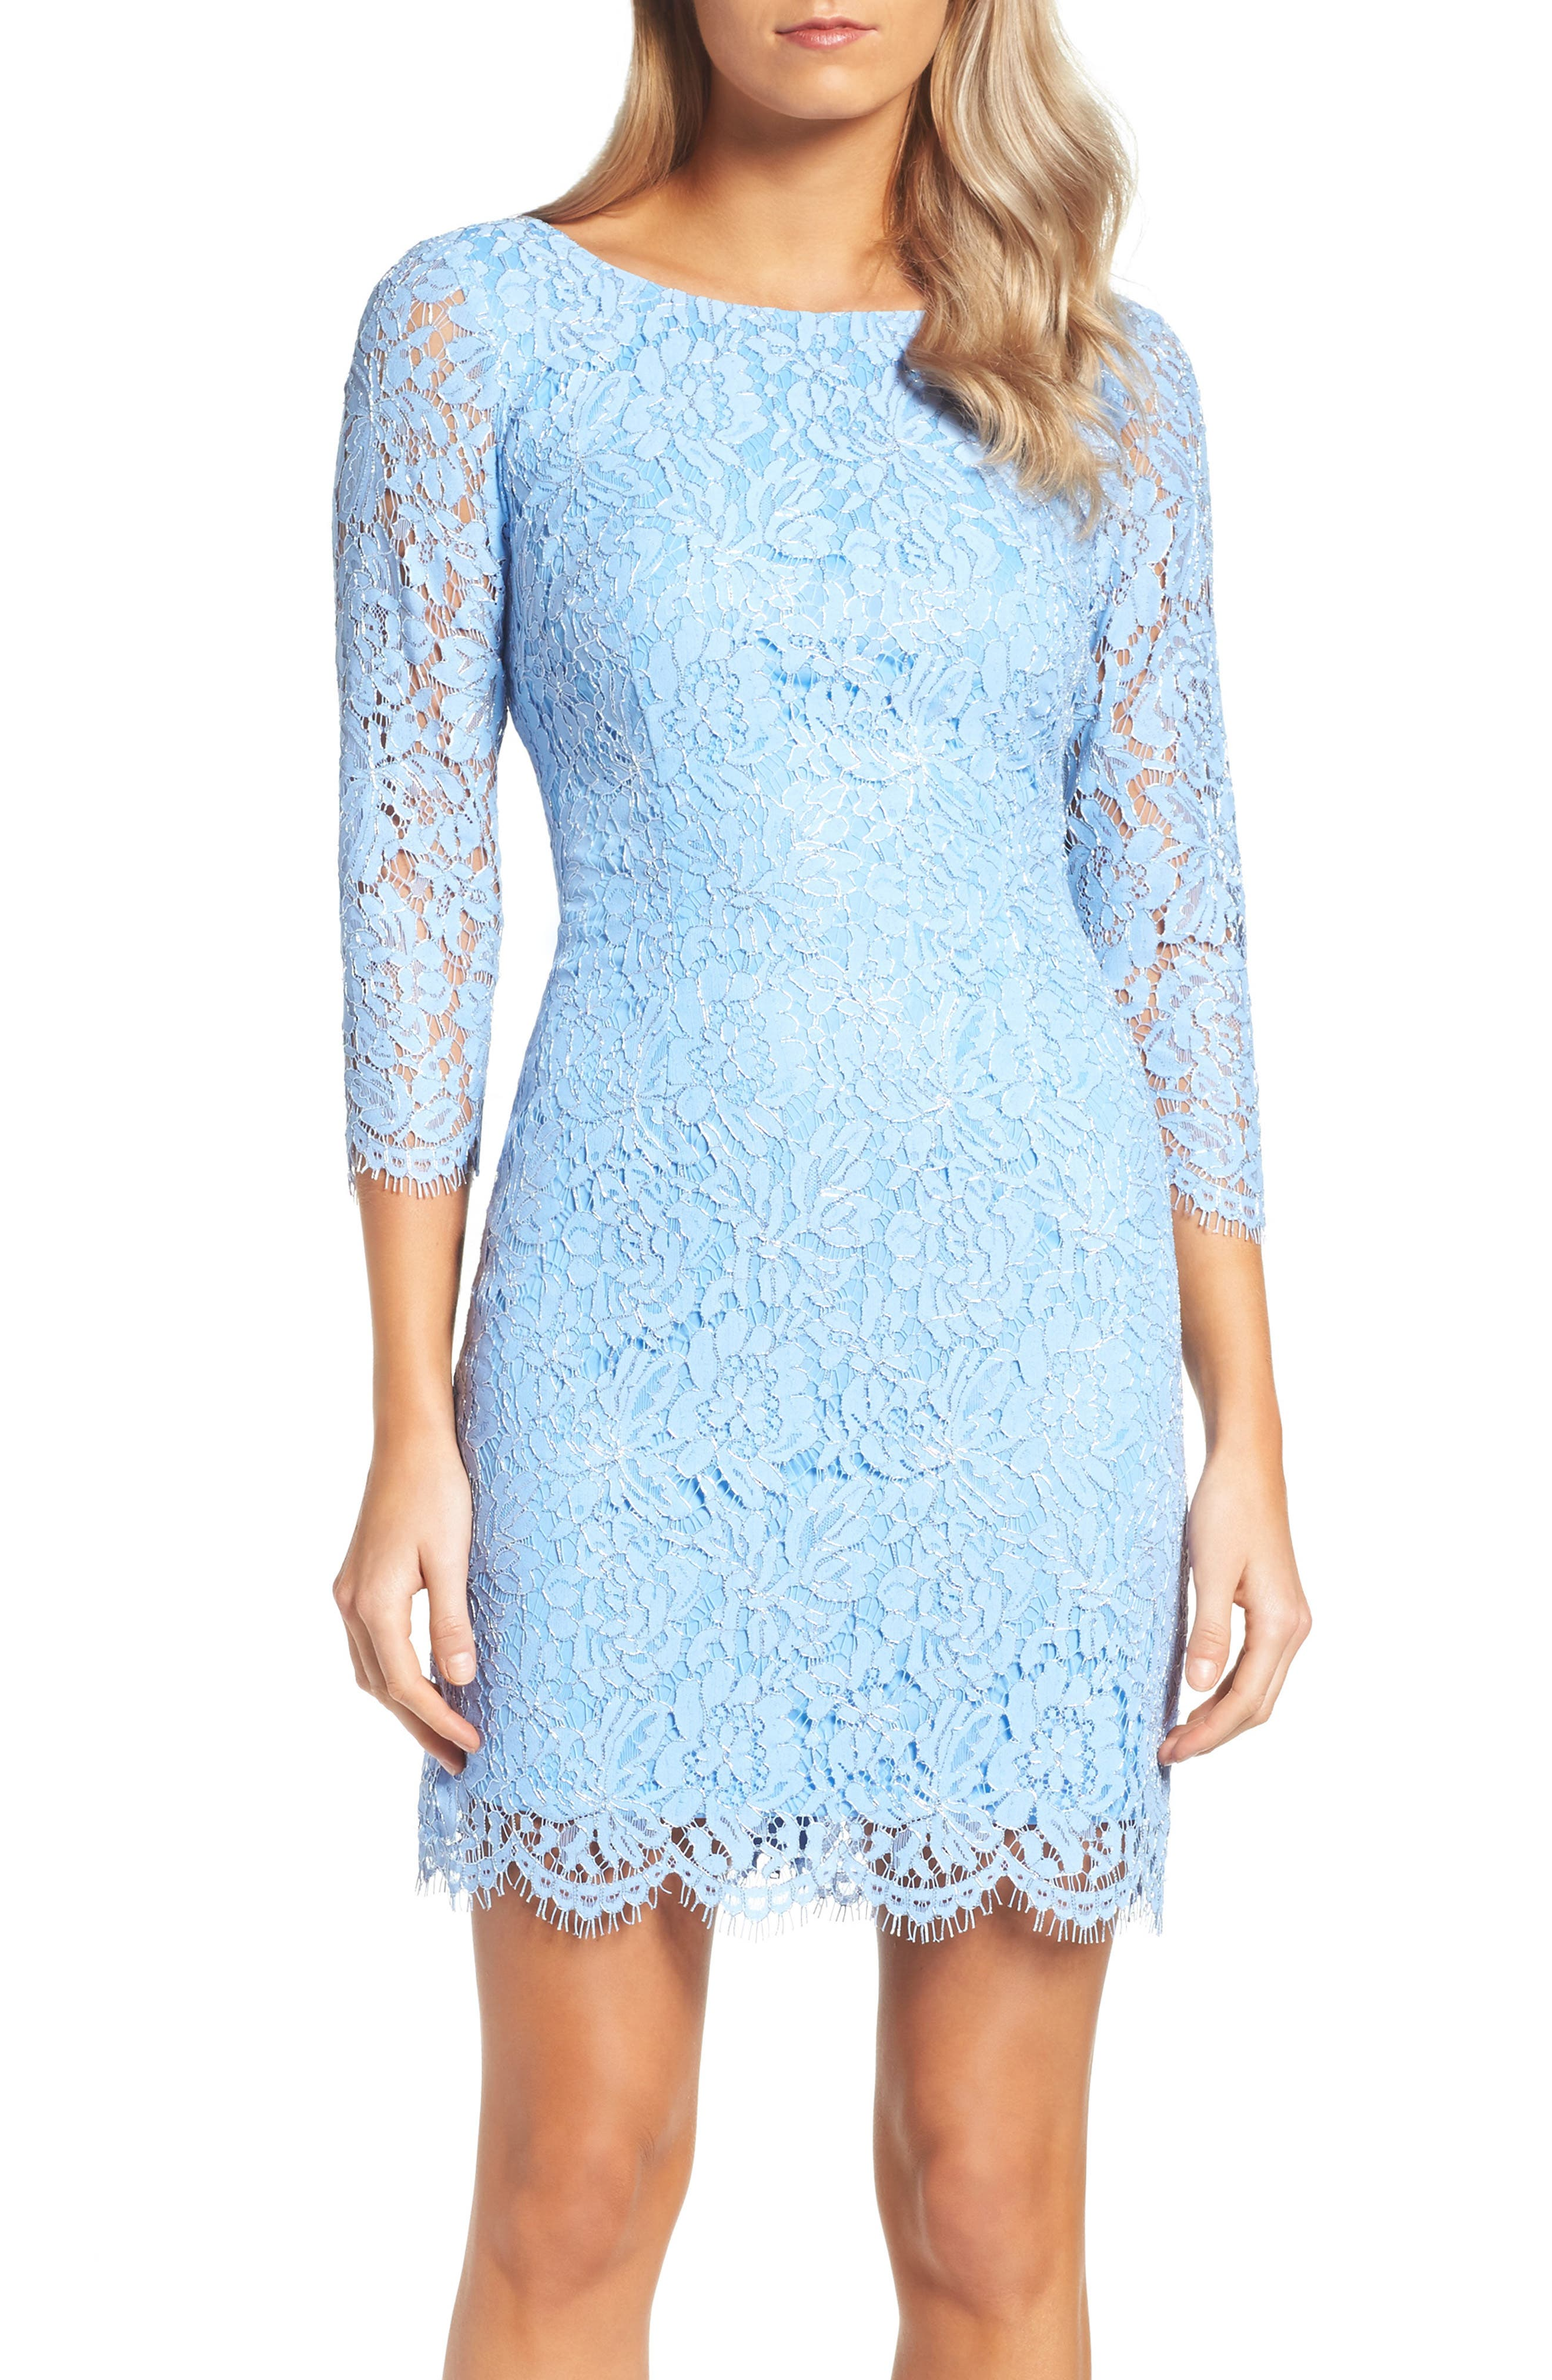 Adrianna Papell Metallic Lace Minidress (Regular & Petite)